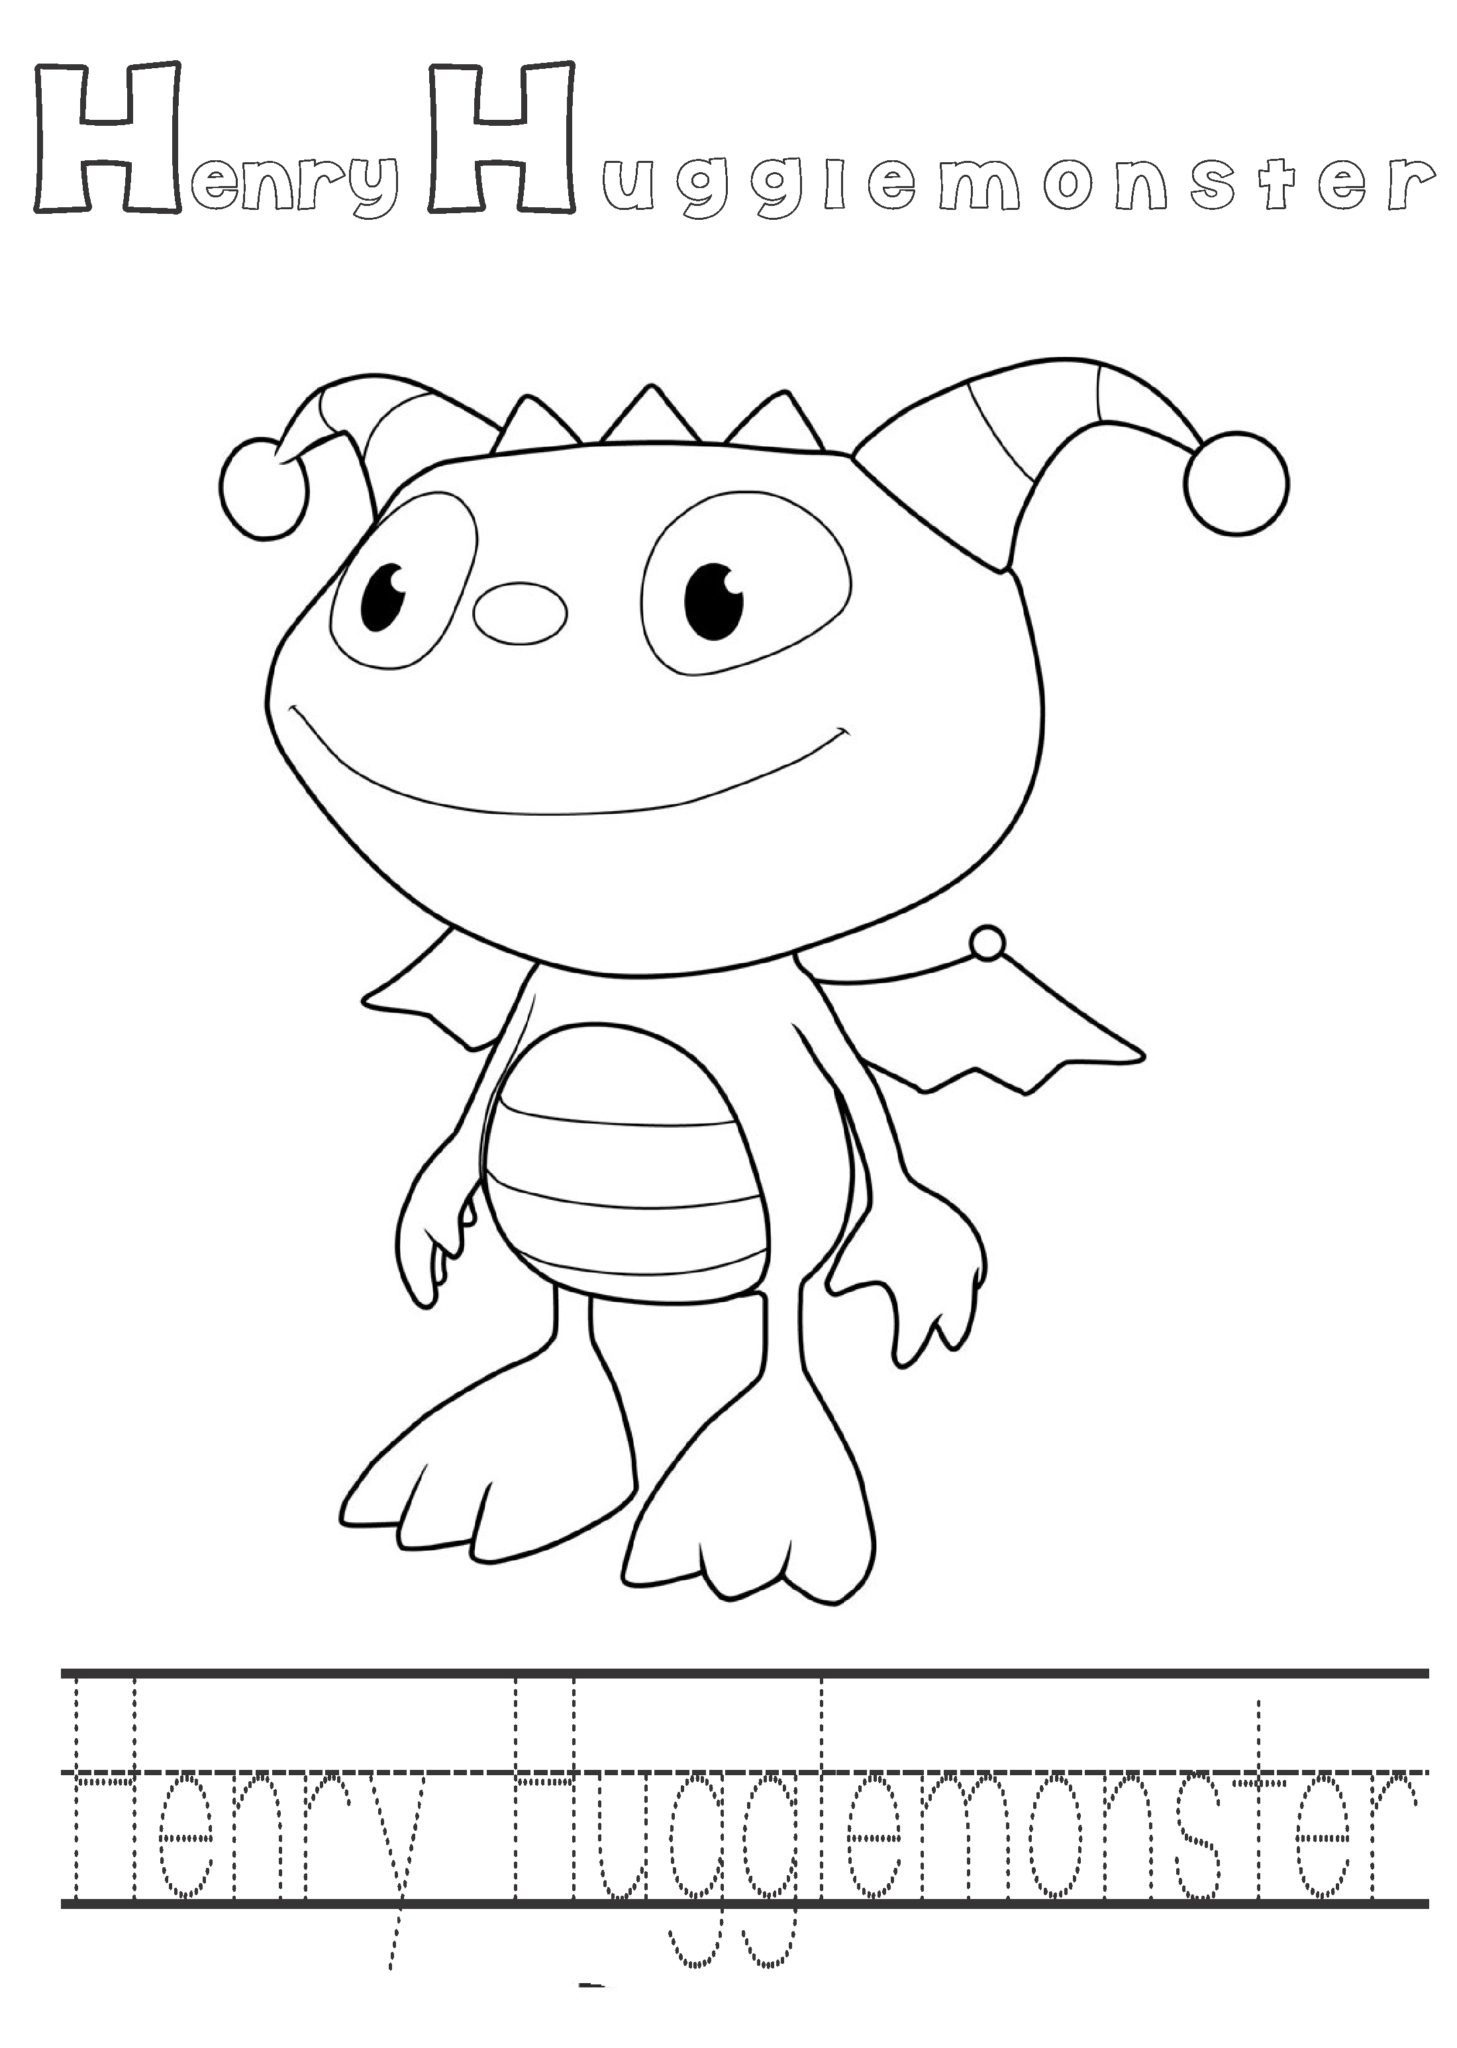 Henry Hugglemoster Printable Coloring Pages